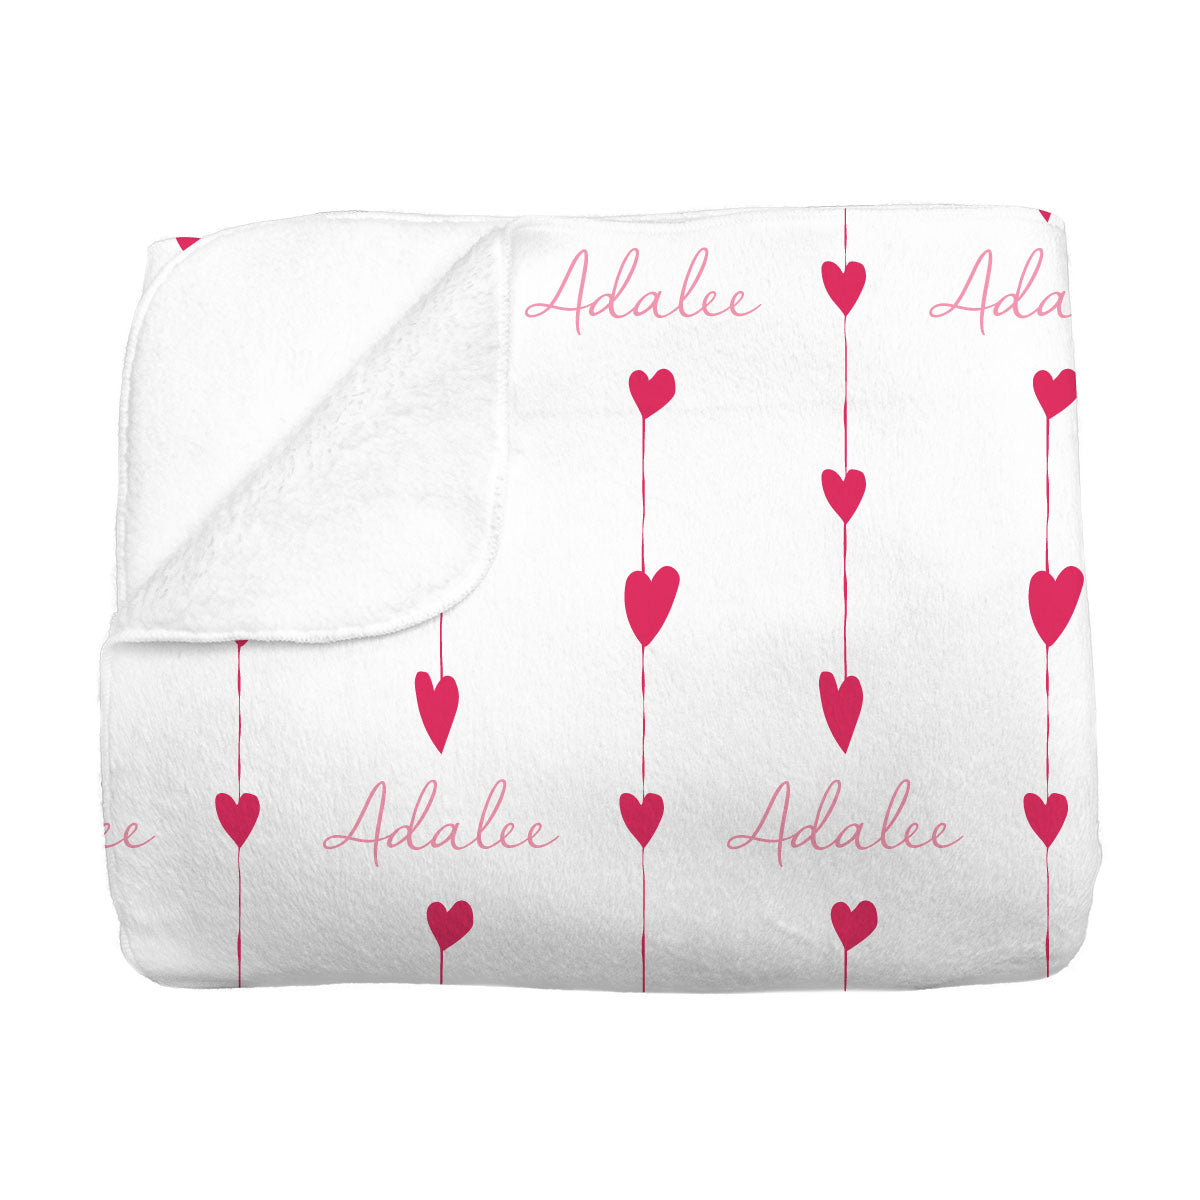 Adalee's Valentine Hearts | Big Kid Blanket